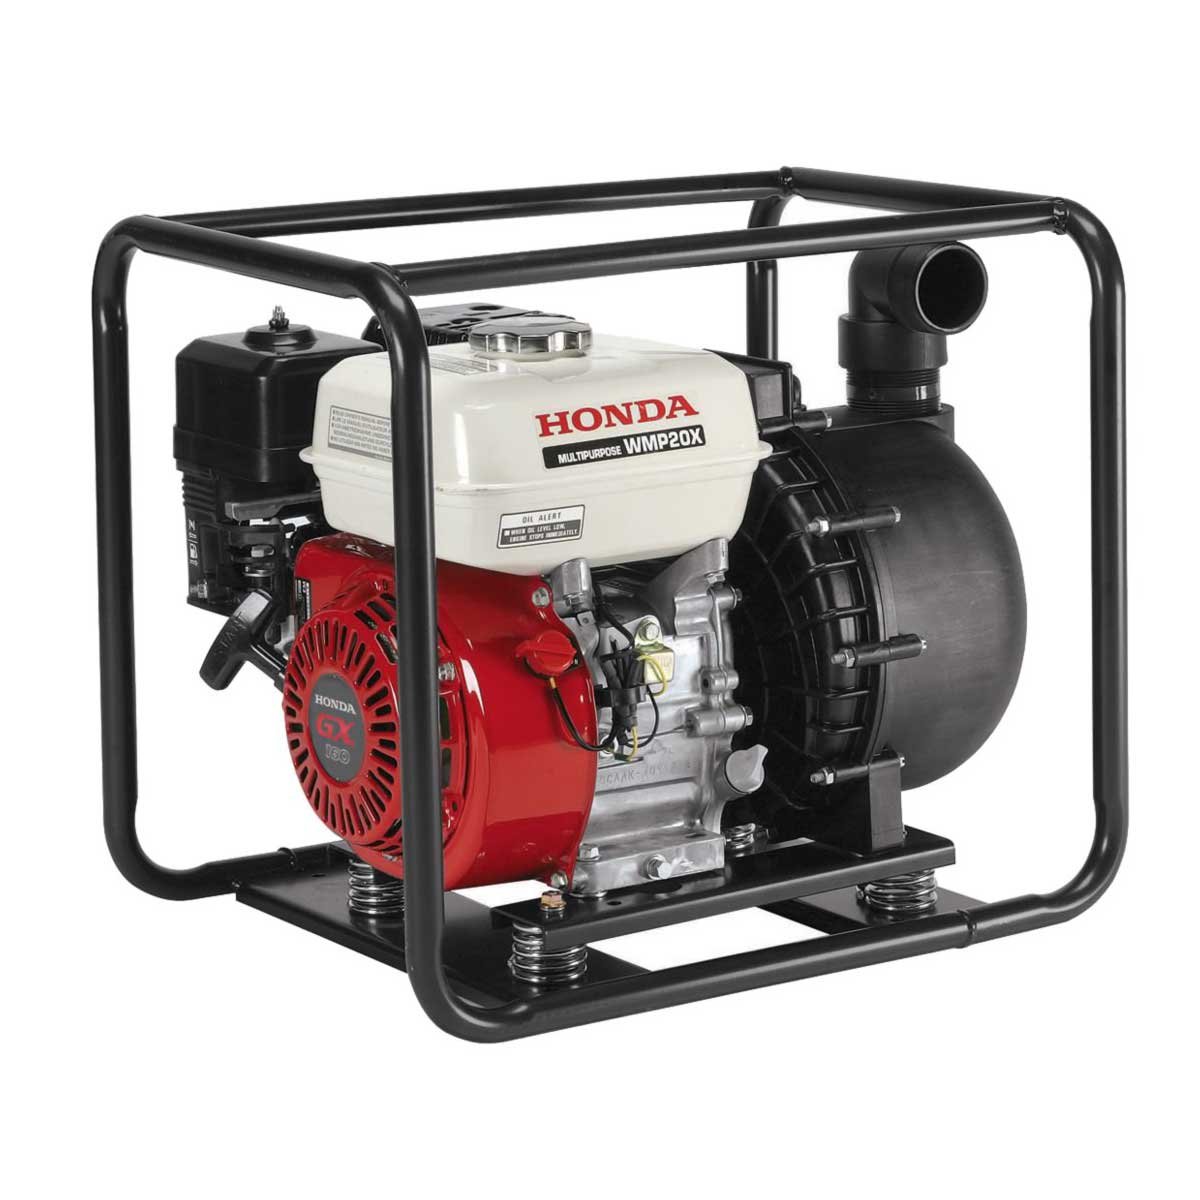 Honda WMP20 Industrial and Agricultural Chemicals